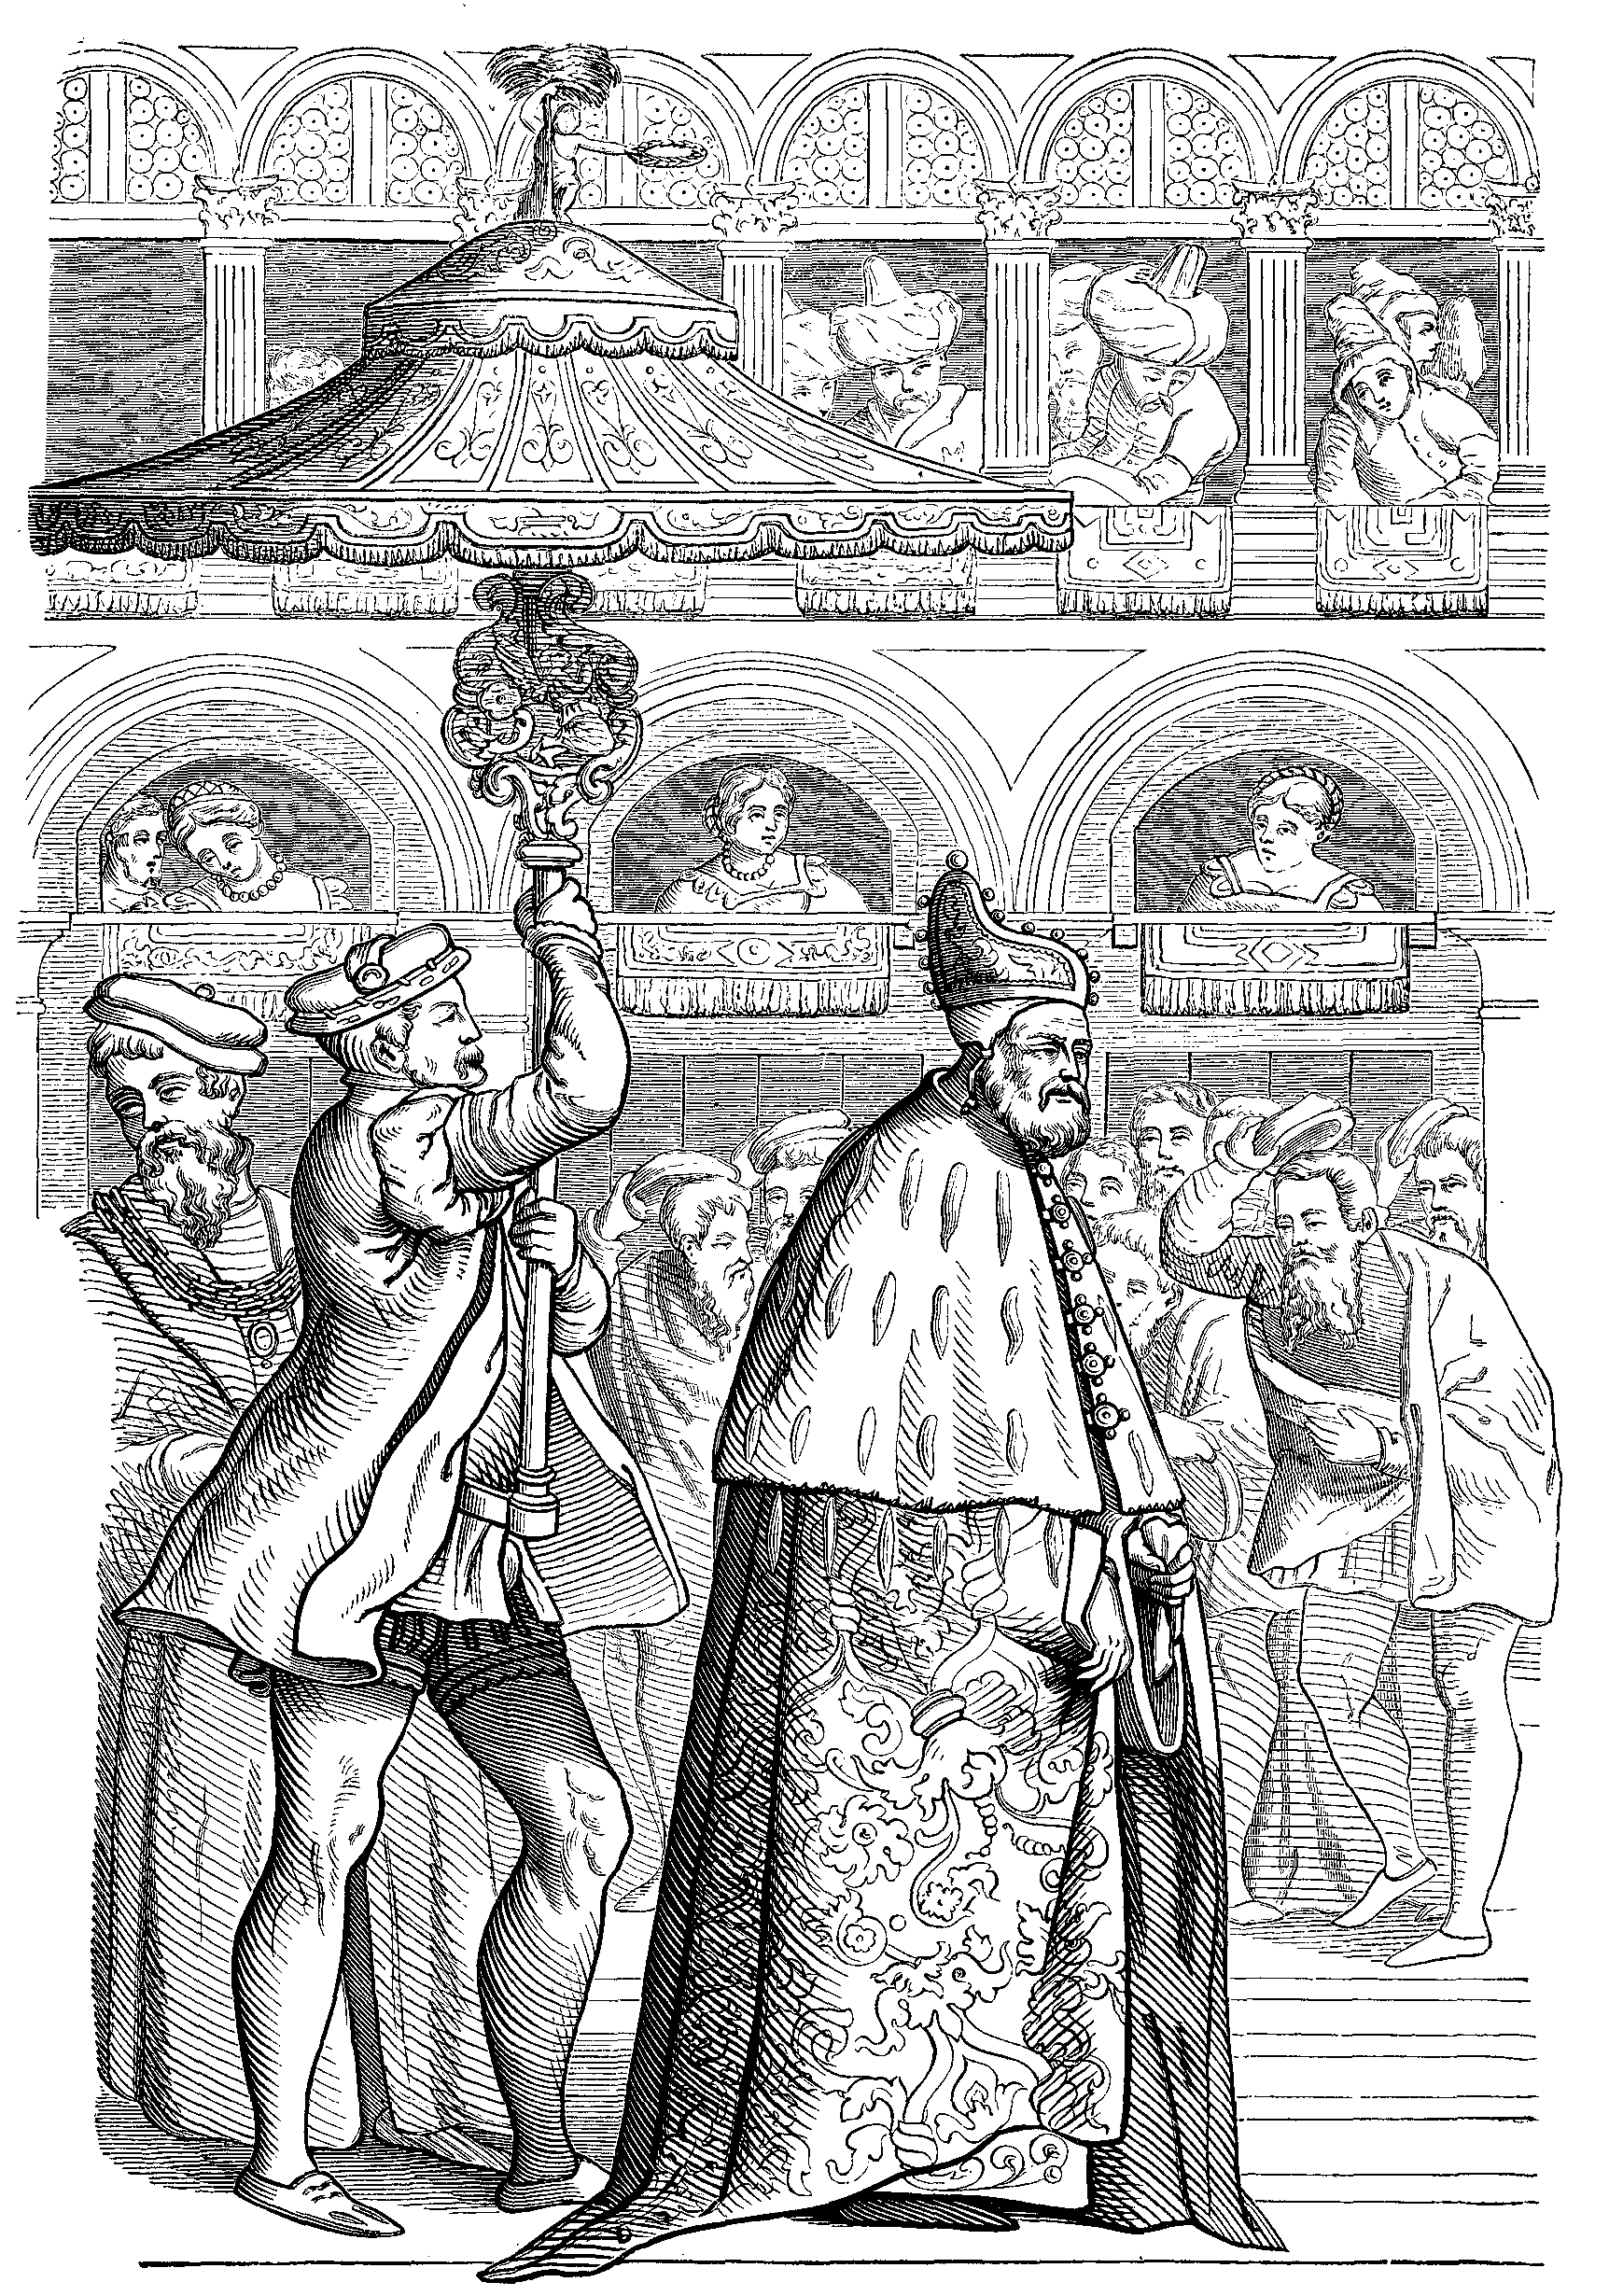 http://upload.wikimedia.org/wikipedia/commons/6/66/Grand_Procession_of_the_Doge_of_Venice.png